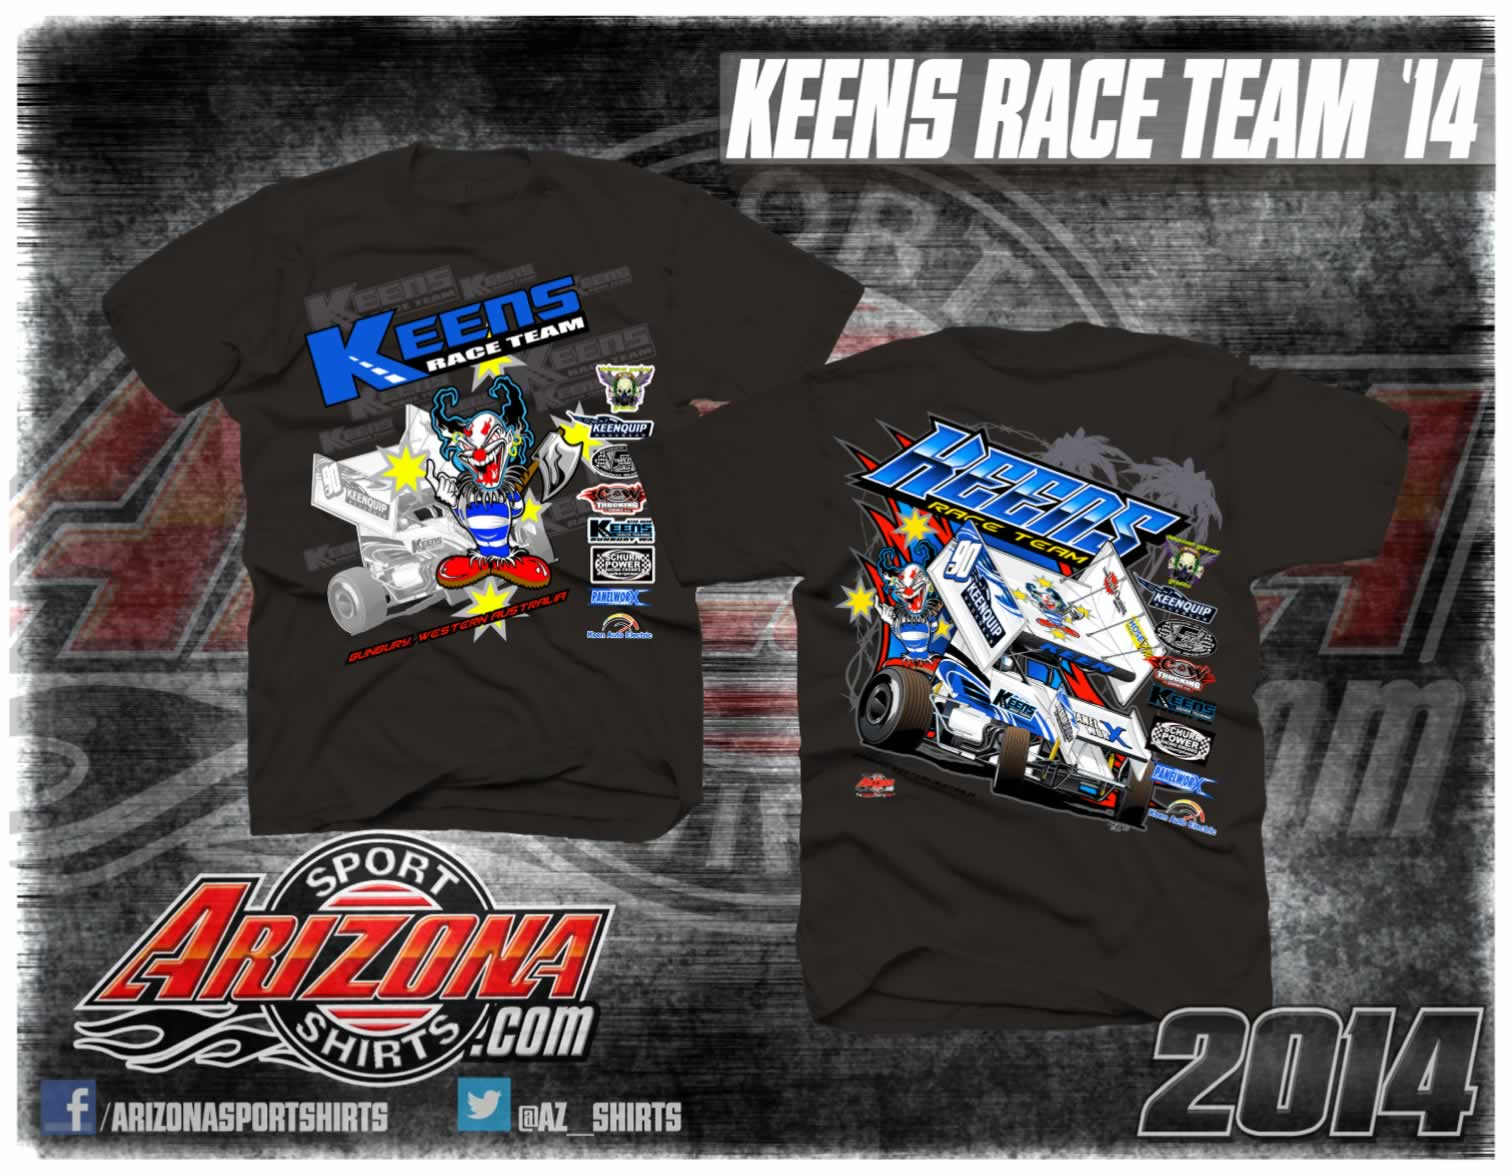 keens-race-team-14